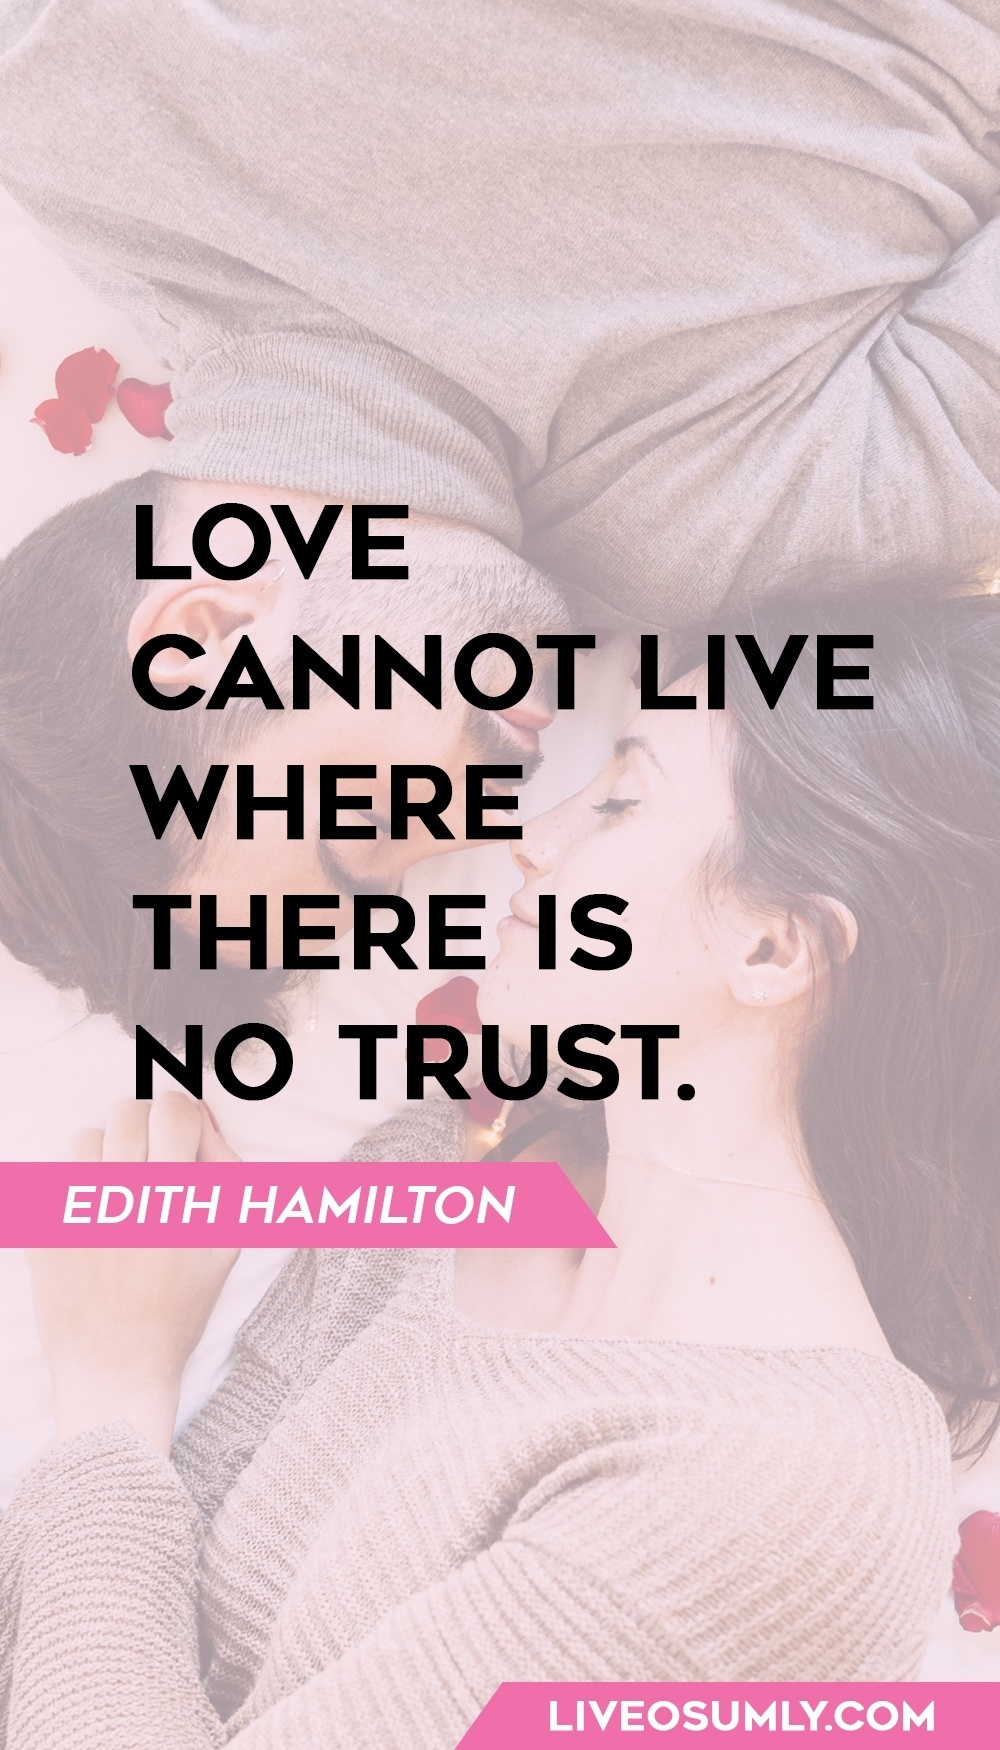 Edith Hamilton one of the quotes about trust in a relationship